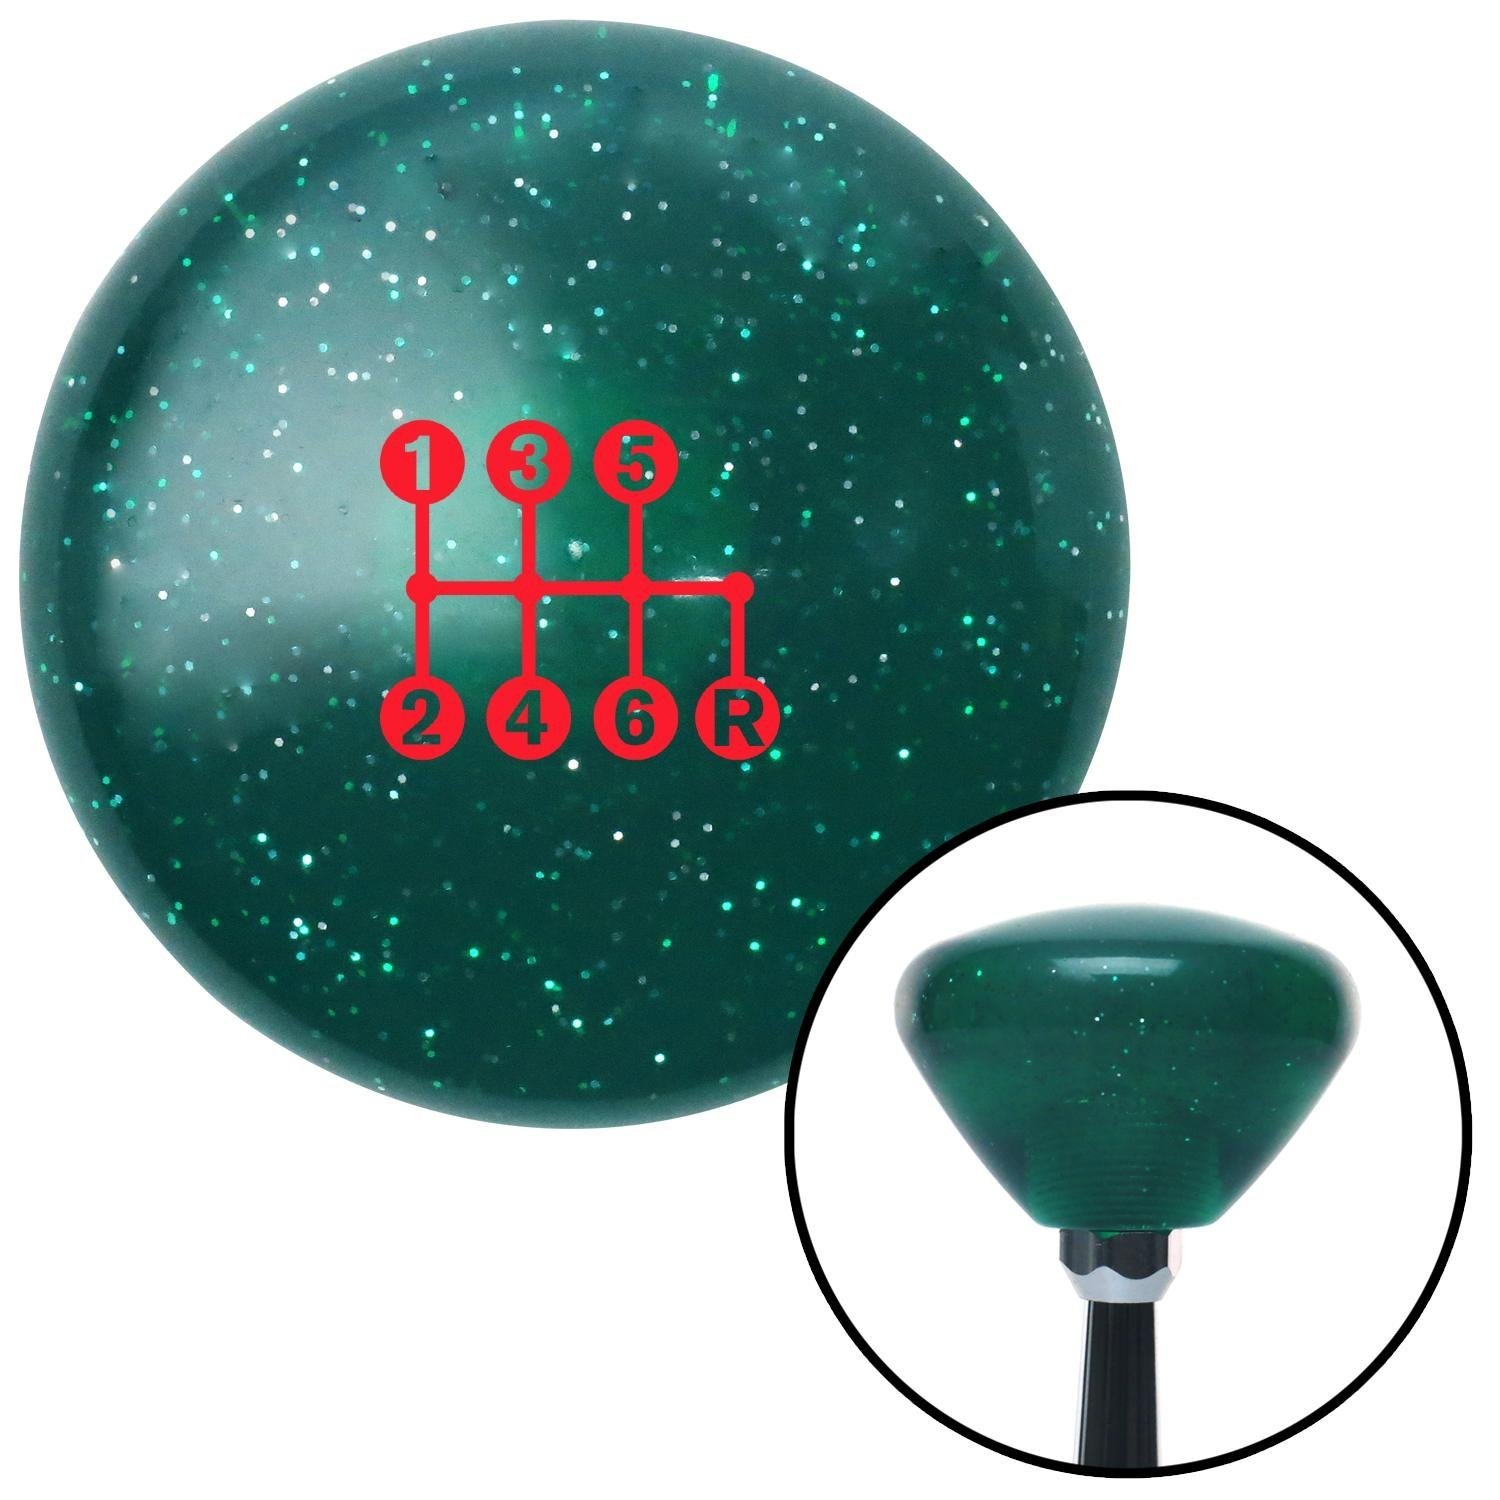 American Shifter 292293 Shift Knob Red 6 Speed Shift Pattern - Dots 41n Green Retro Metal Flake with M16 x 1.5 Insert